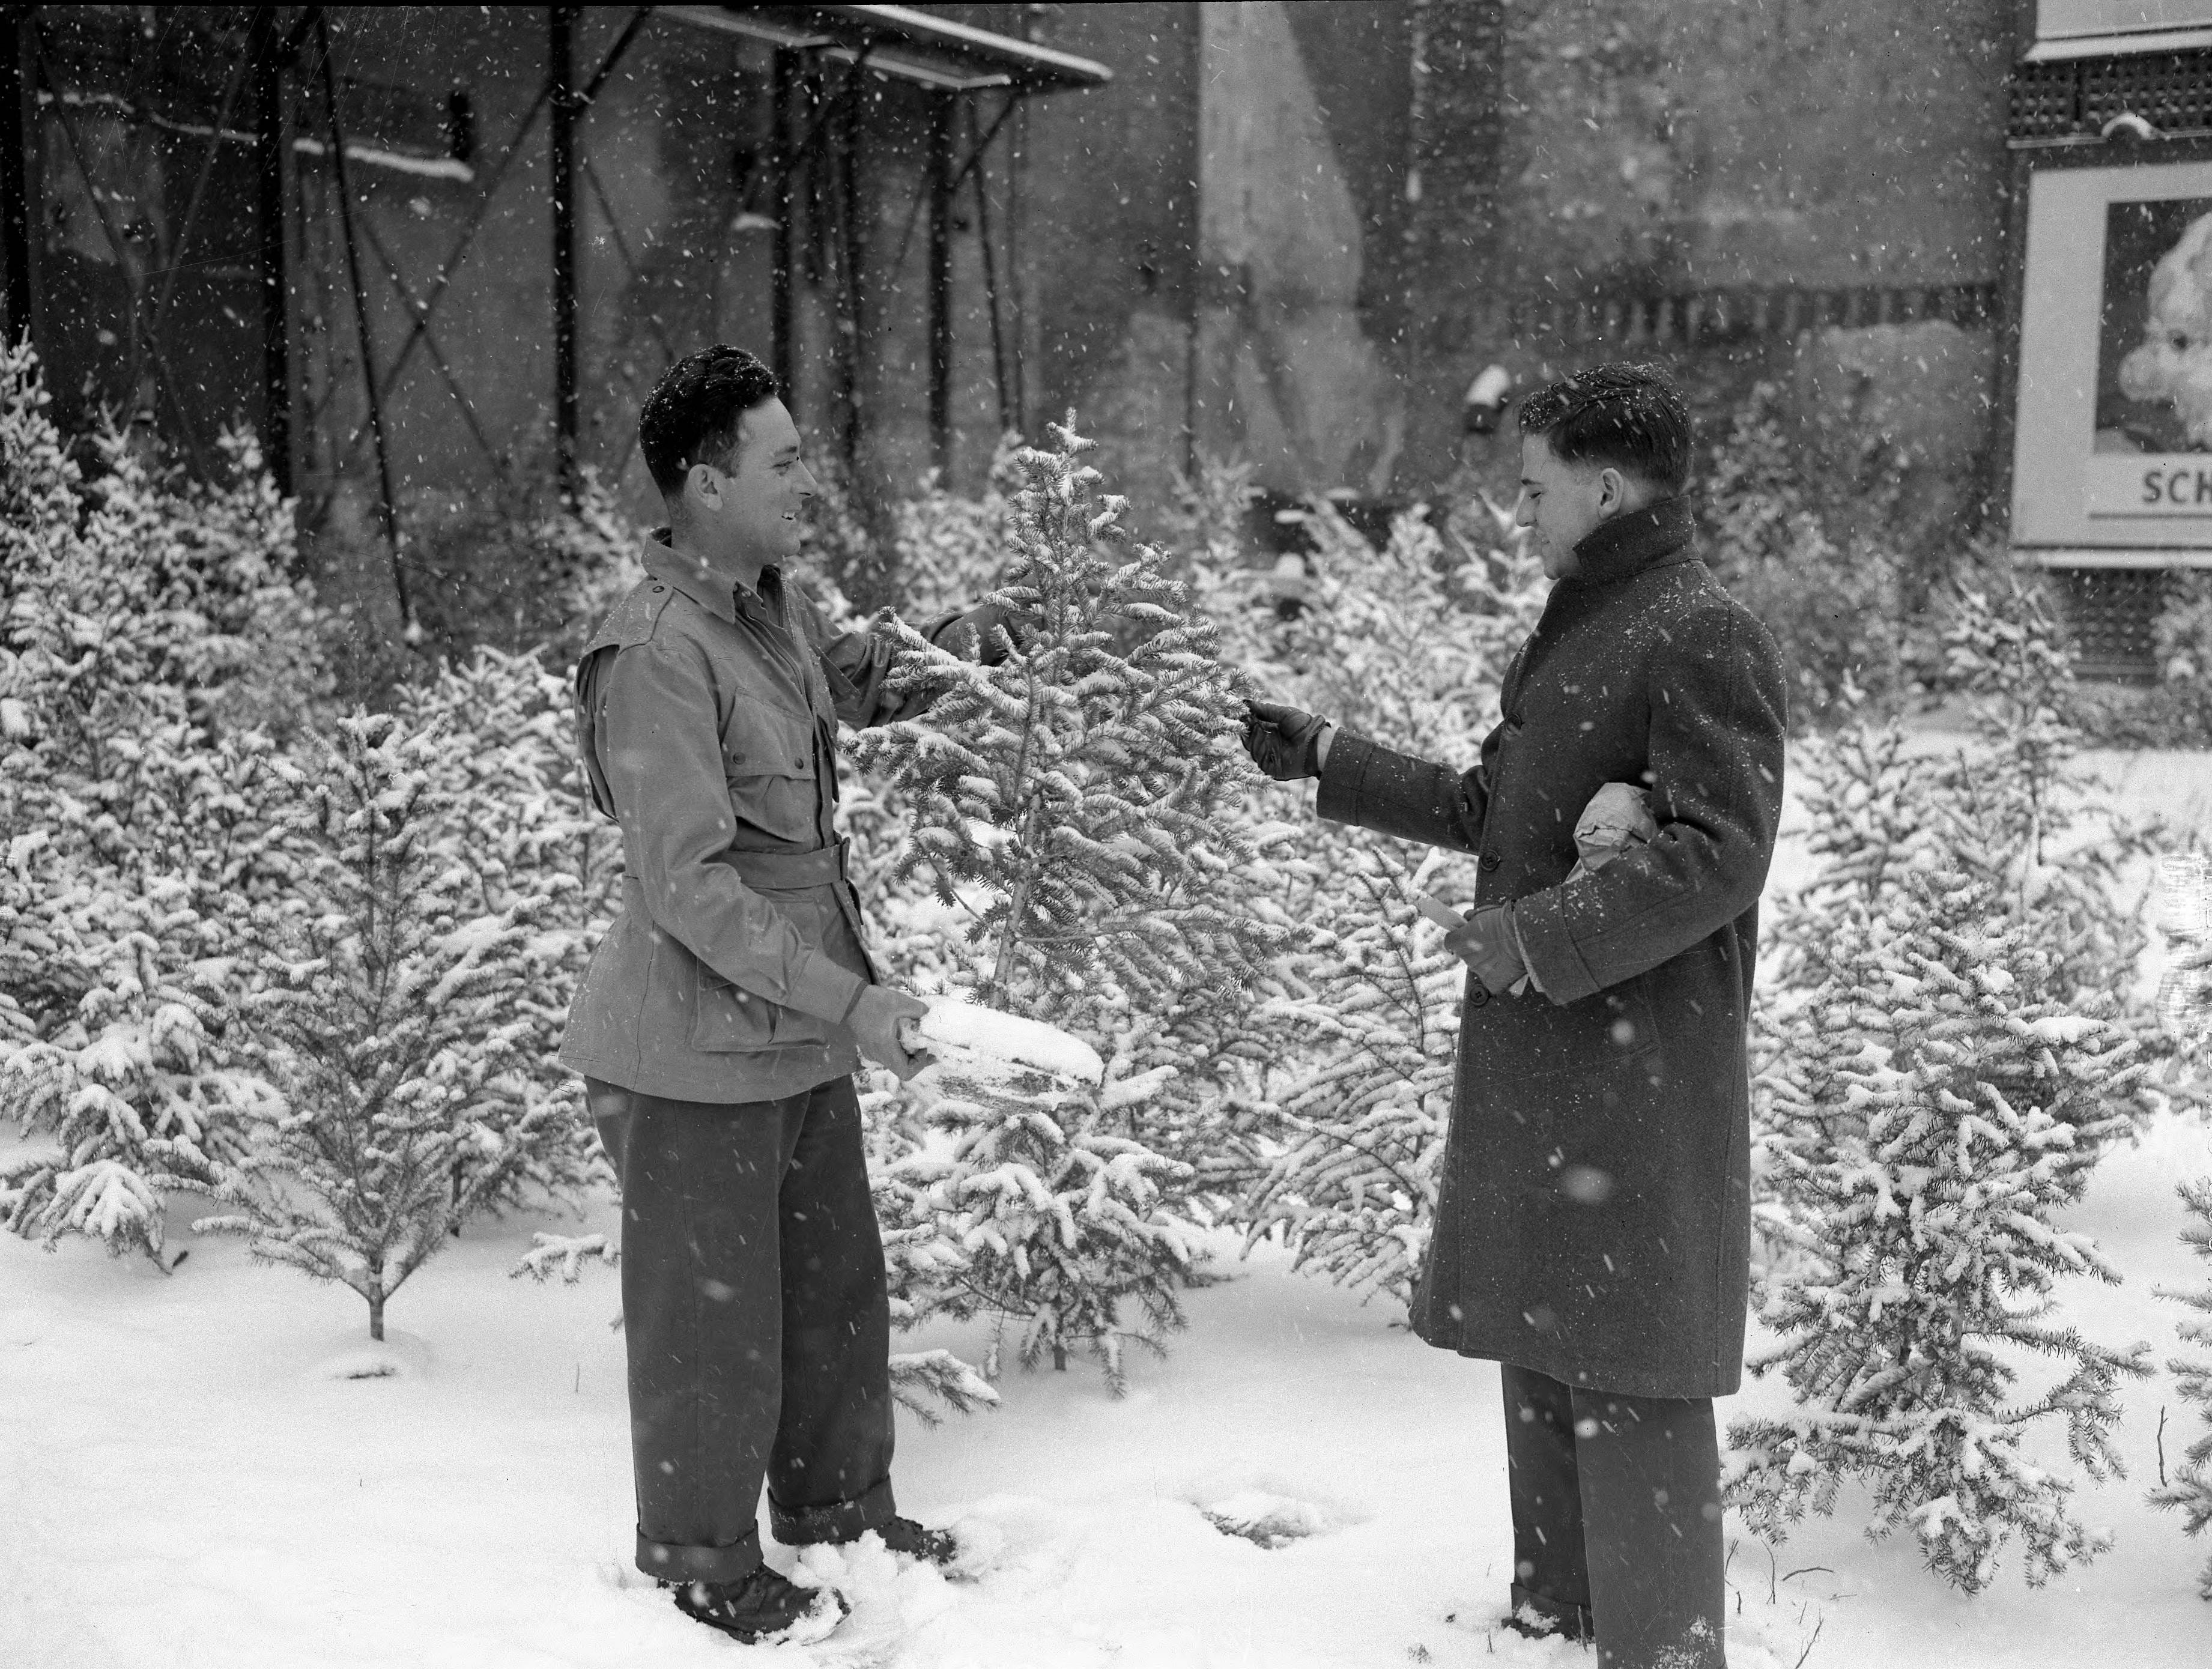 wo men discussing the purchase of a Christmas tree in a snowy (and snowing) setting in 1945.